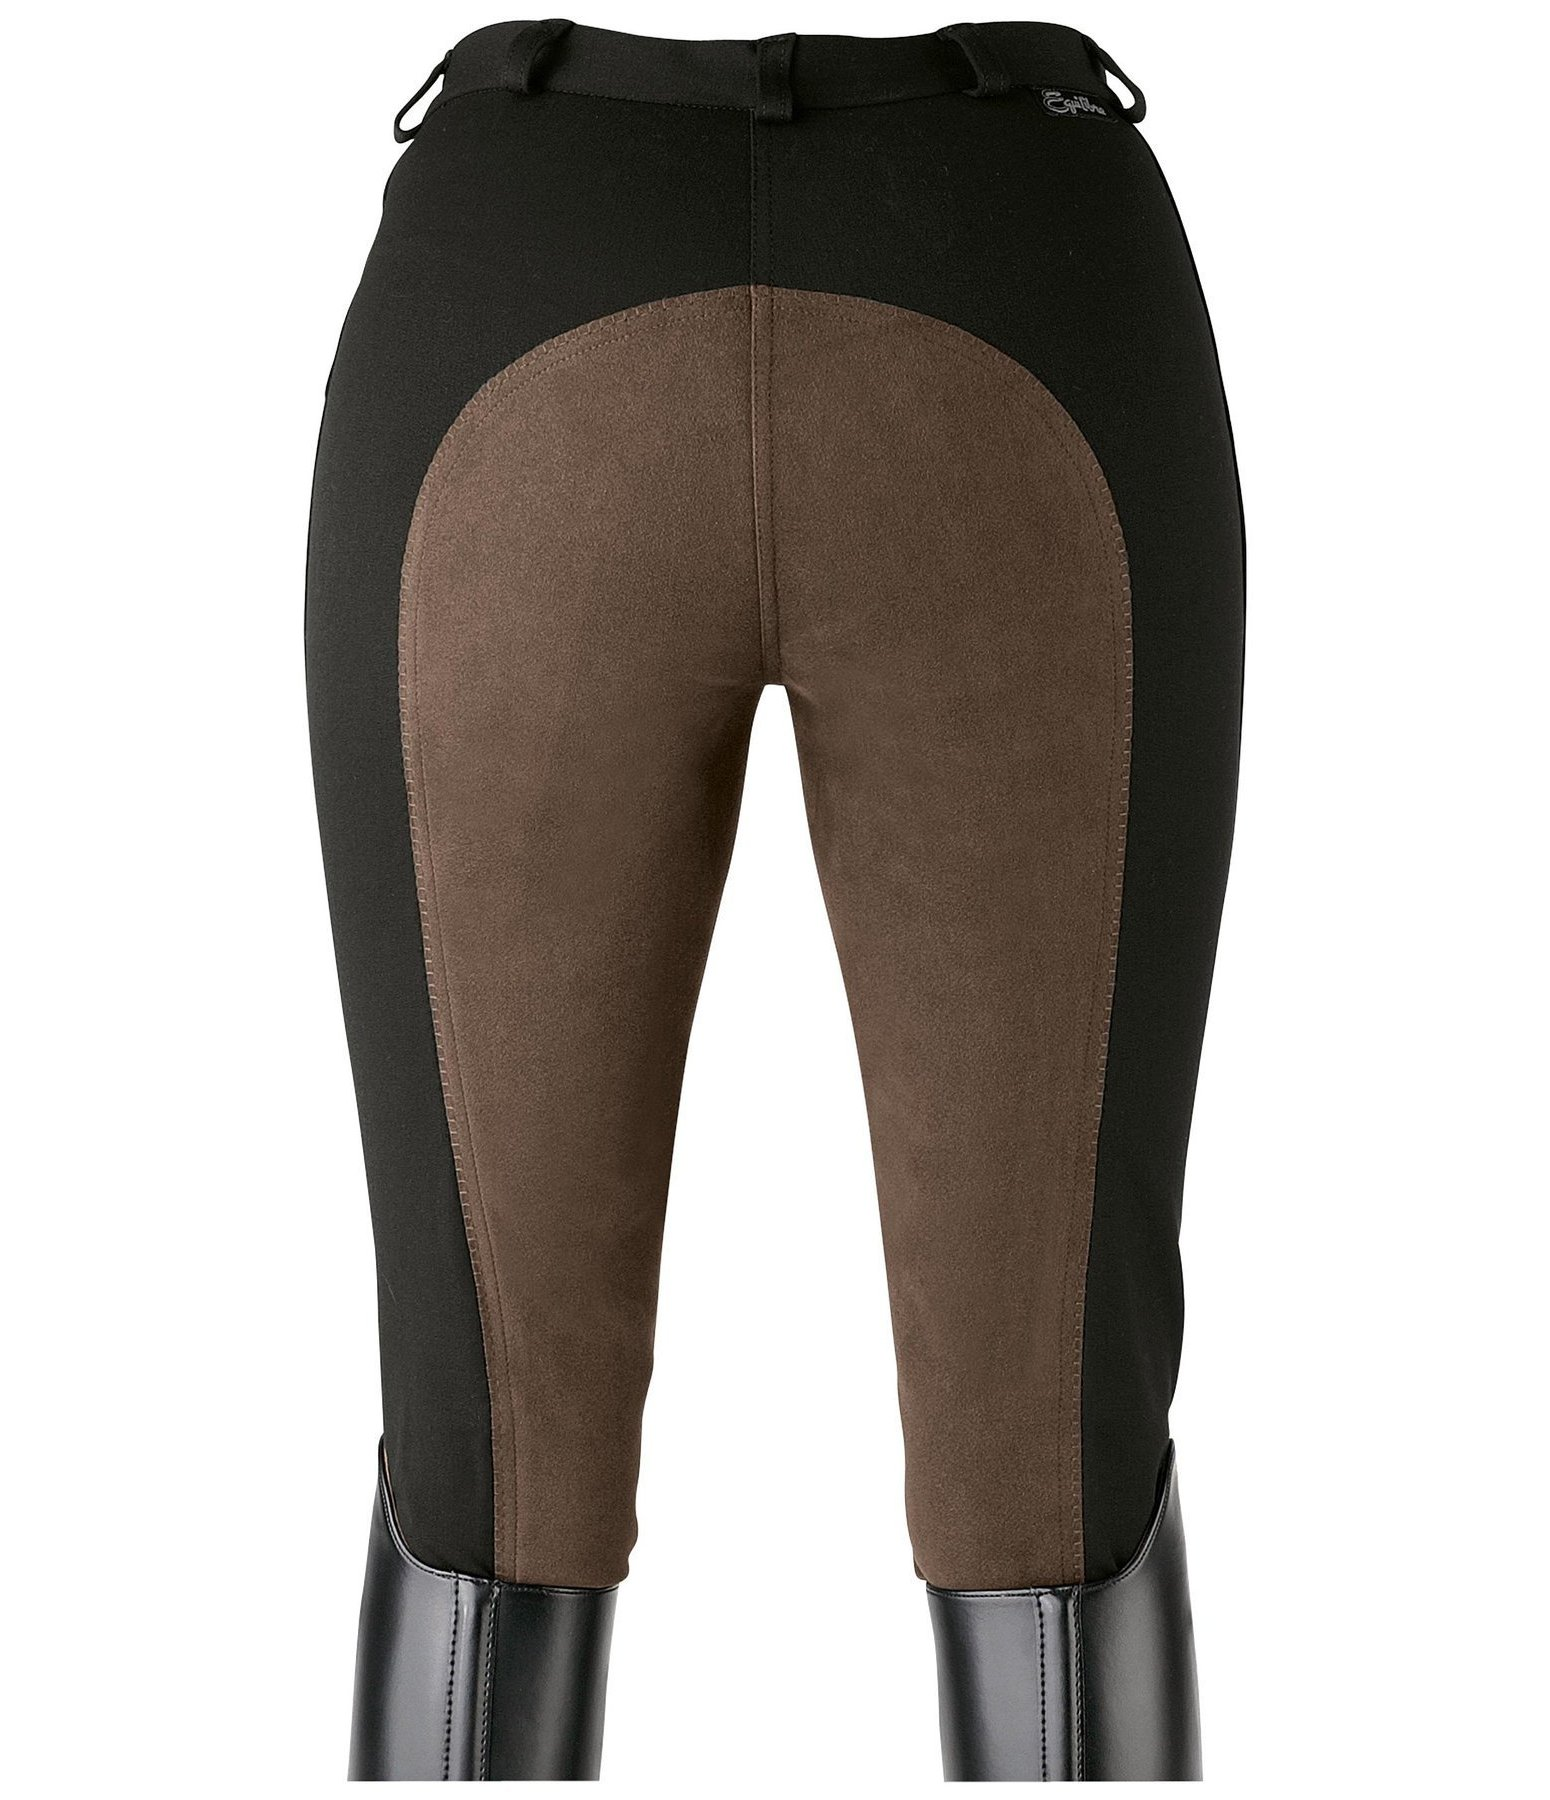 Damen-Vollbesatzreithose Super-Stretch Two Tone